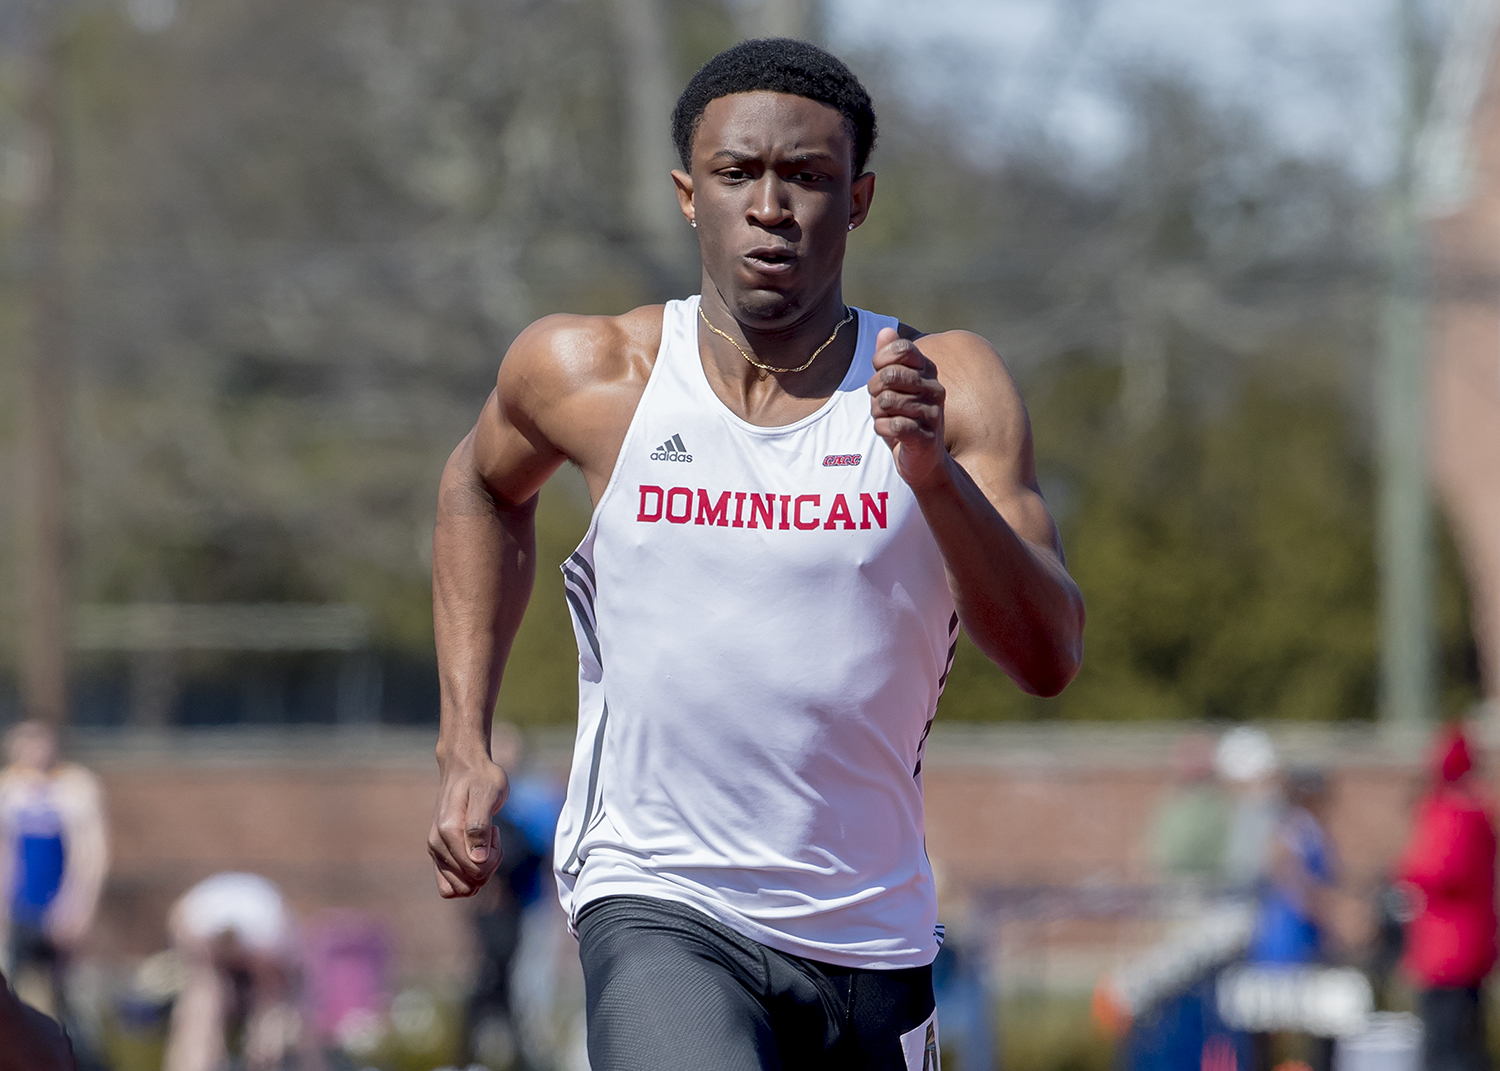 CHARGERS COMPETE AT QUEENSBOROUGH RELAYS